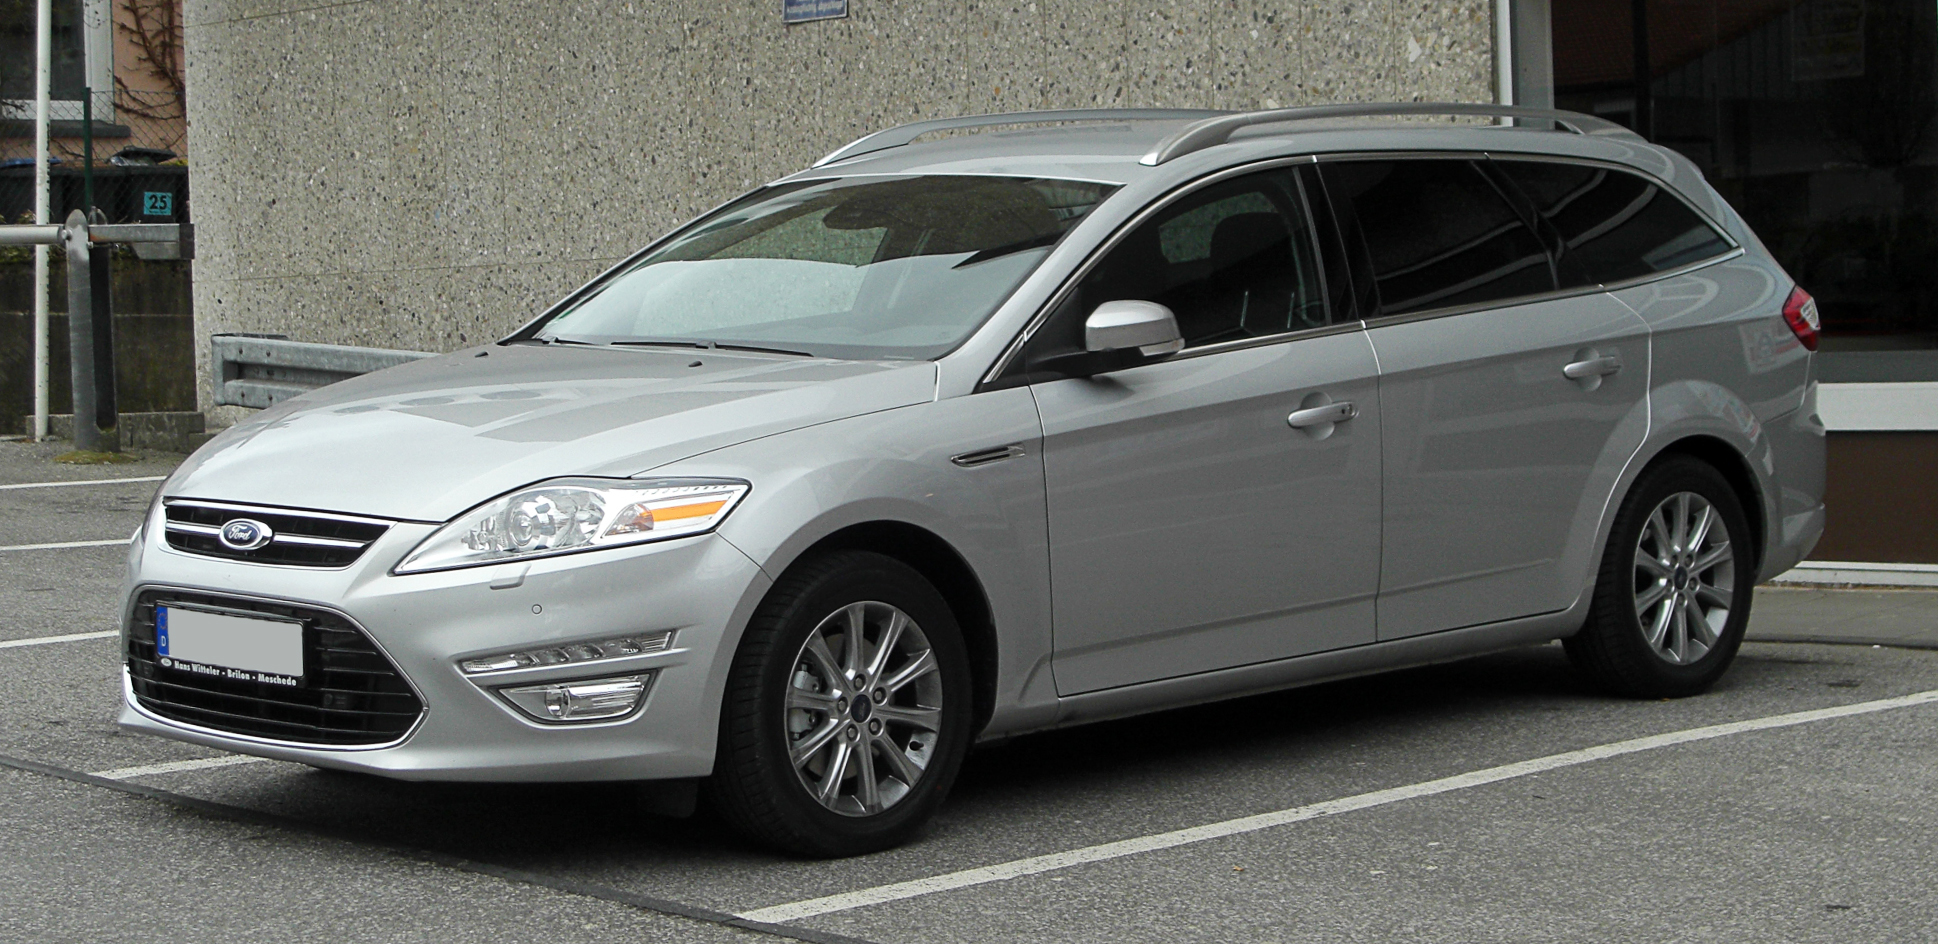 2011 Ford Mondeo photo - 1